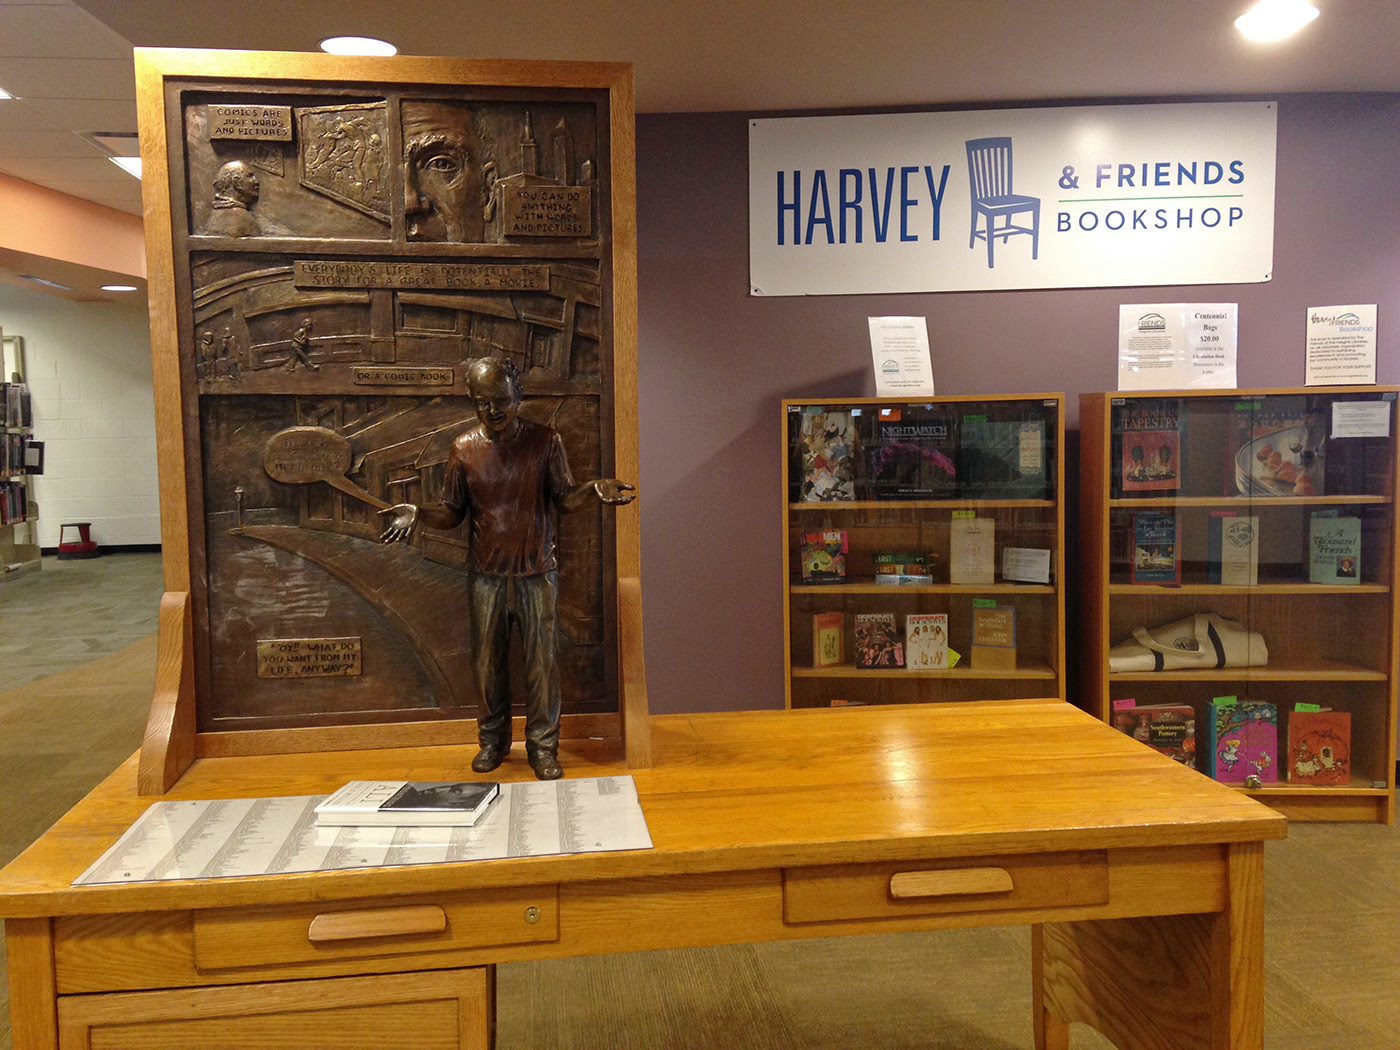 Harvey Pekar's memorial statue, designed by Justin Coulter, and desk at the Cleveland Heights-University Heights Library (photo by the author for Hyperallergic) (click to enlarge)